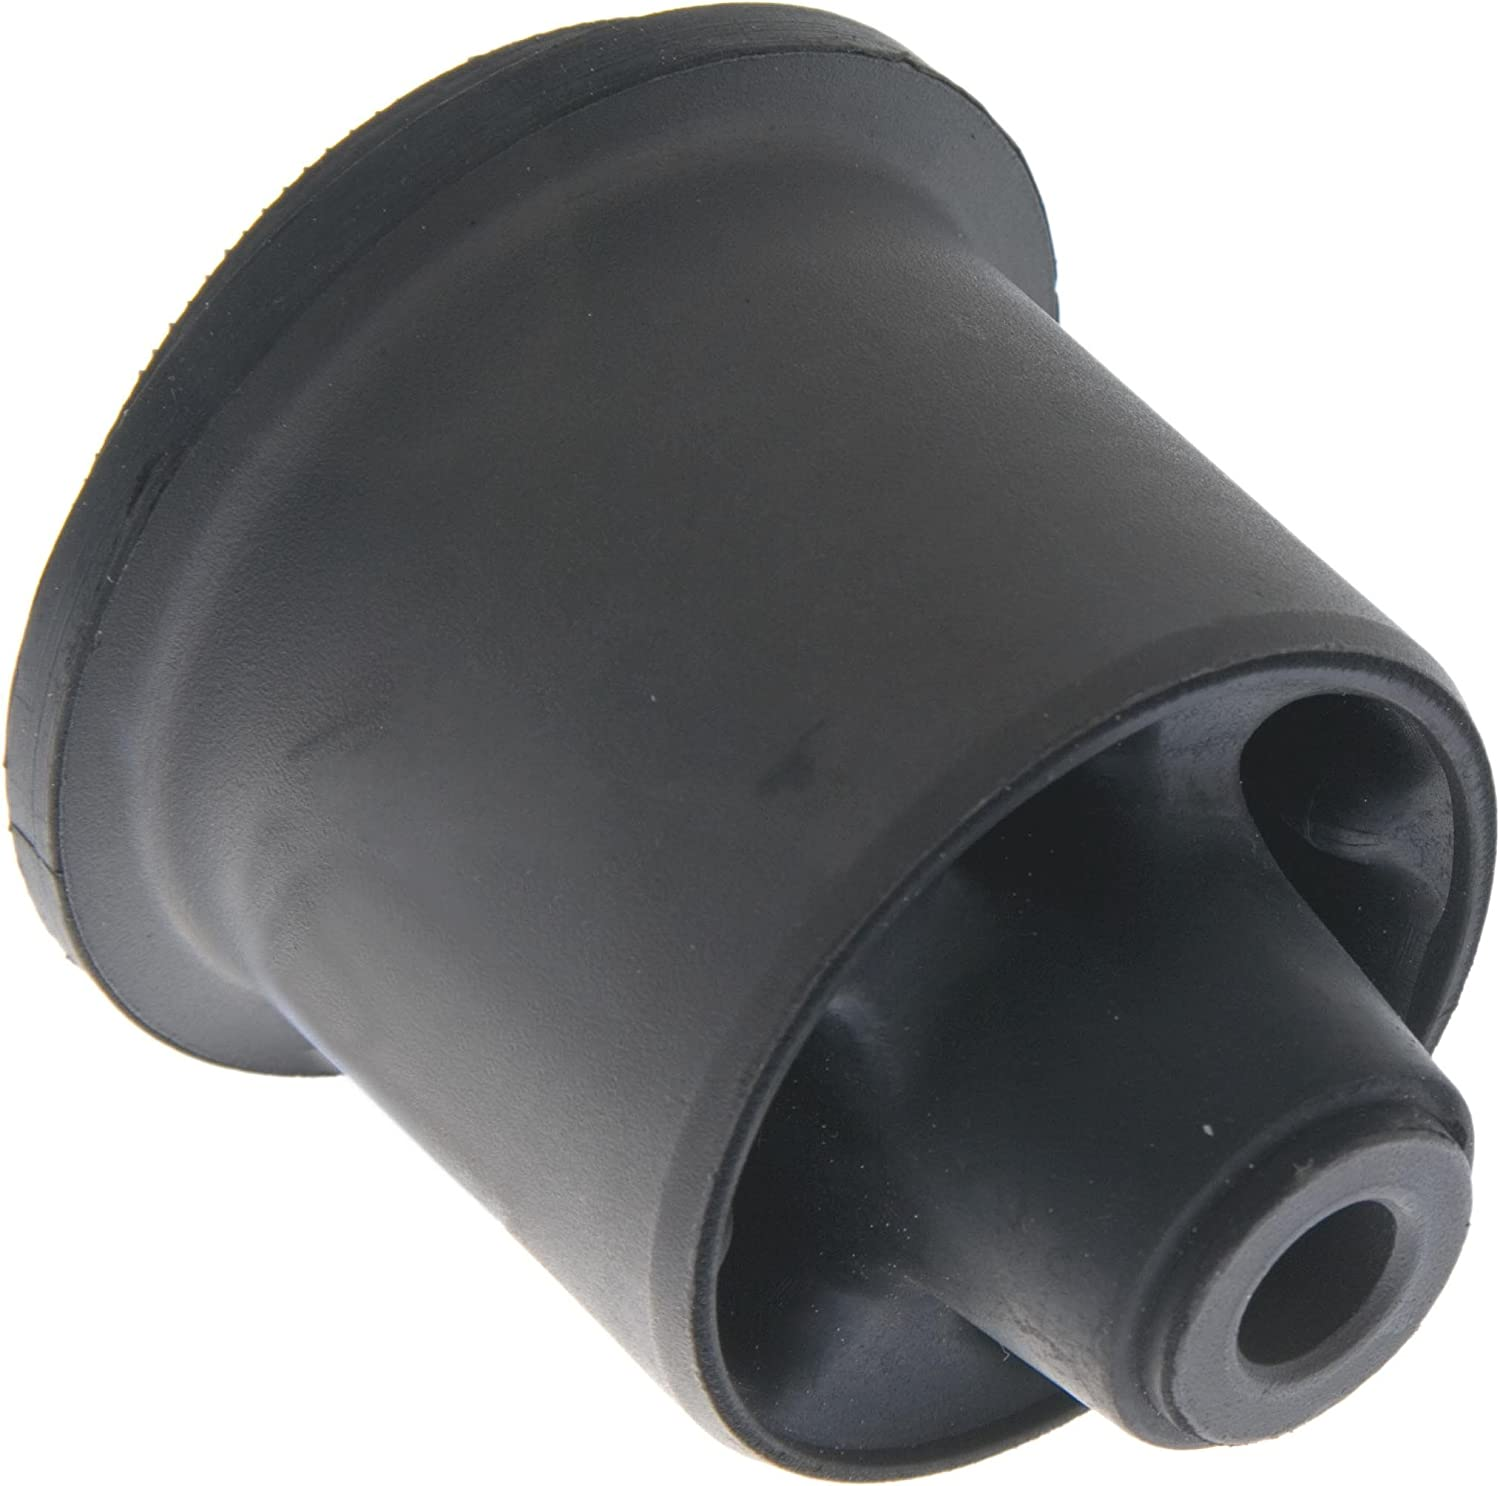 2005-2012 Rear Arm Bushing Front Arm For Nissan Note E11E